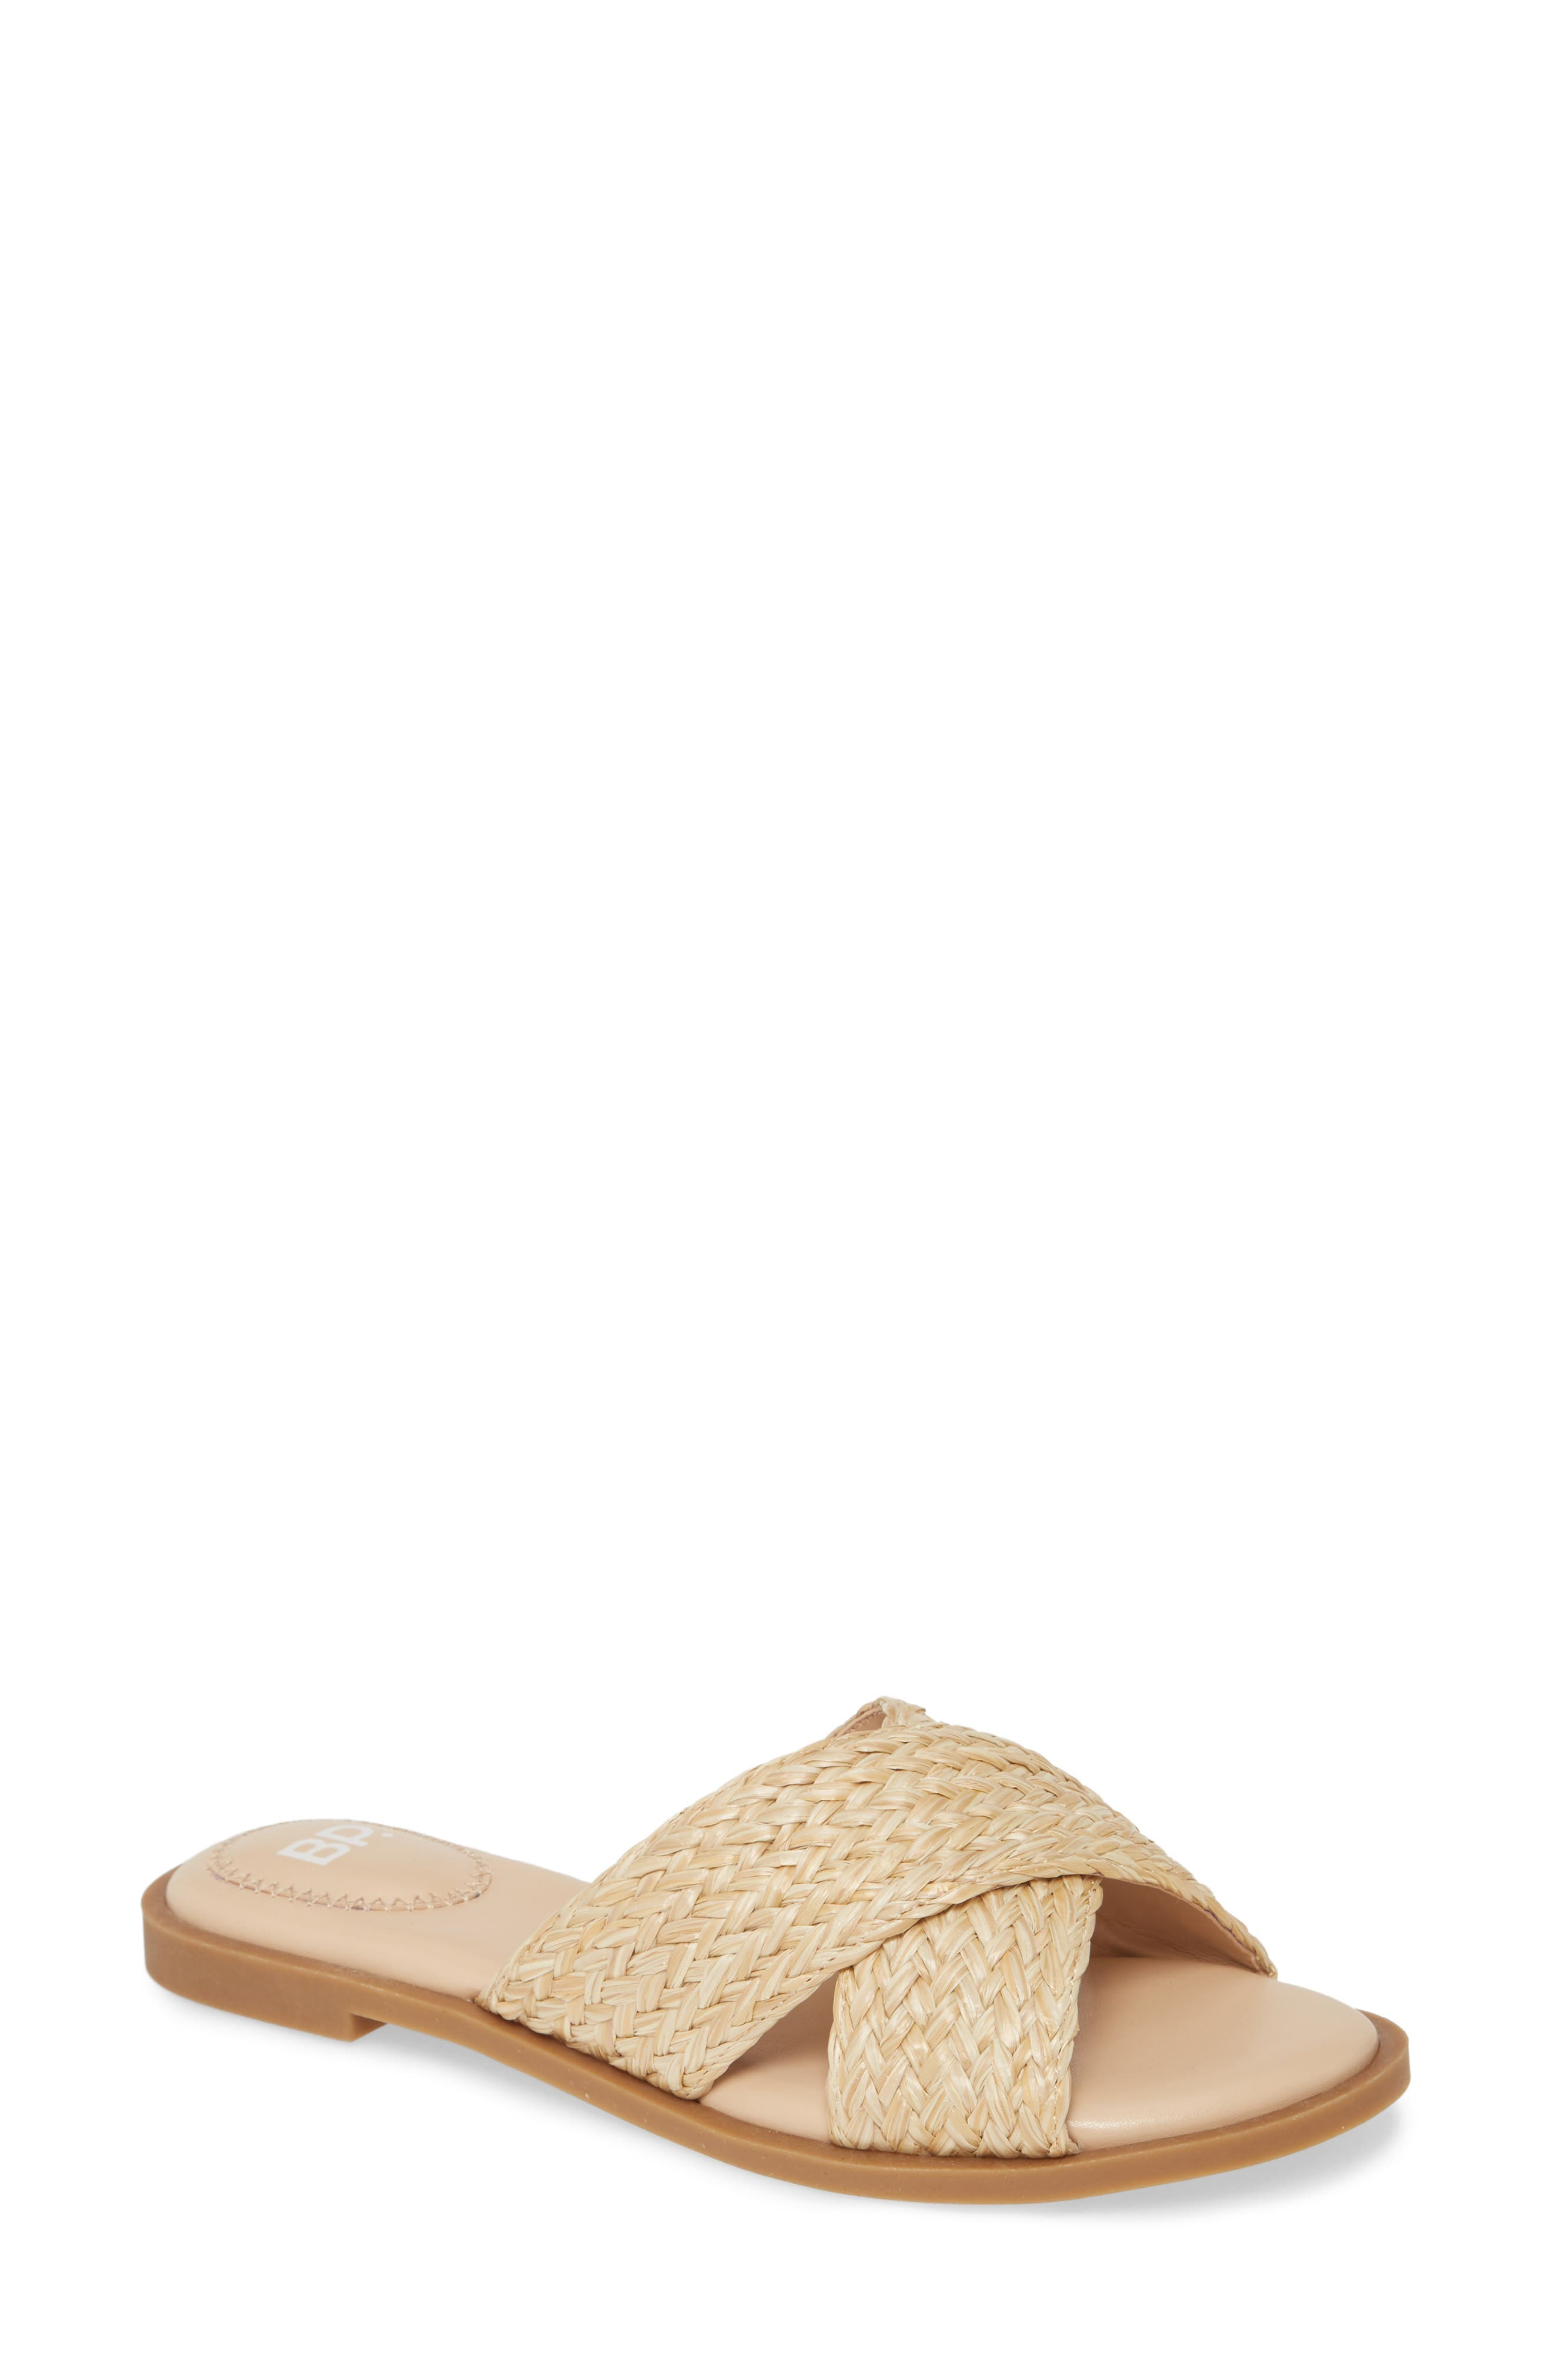 Women s Bp Winnie Woven Flat Slide Sandal E549